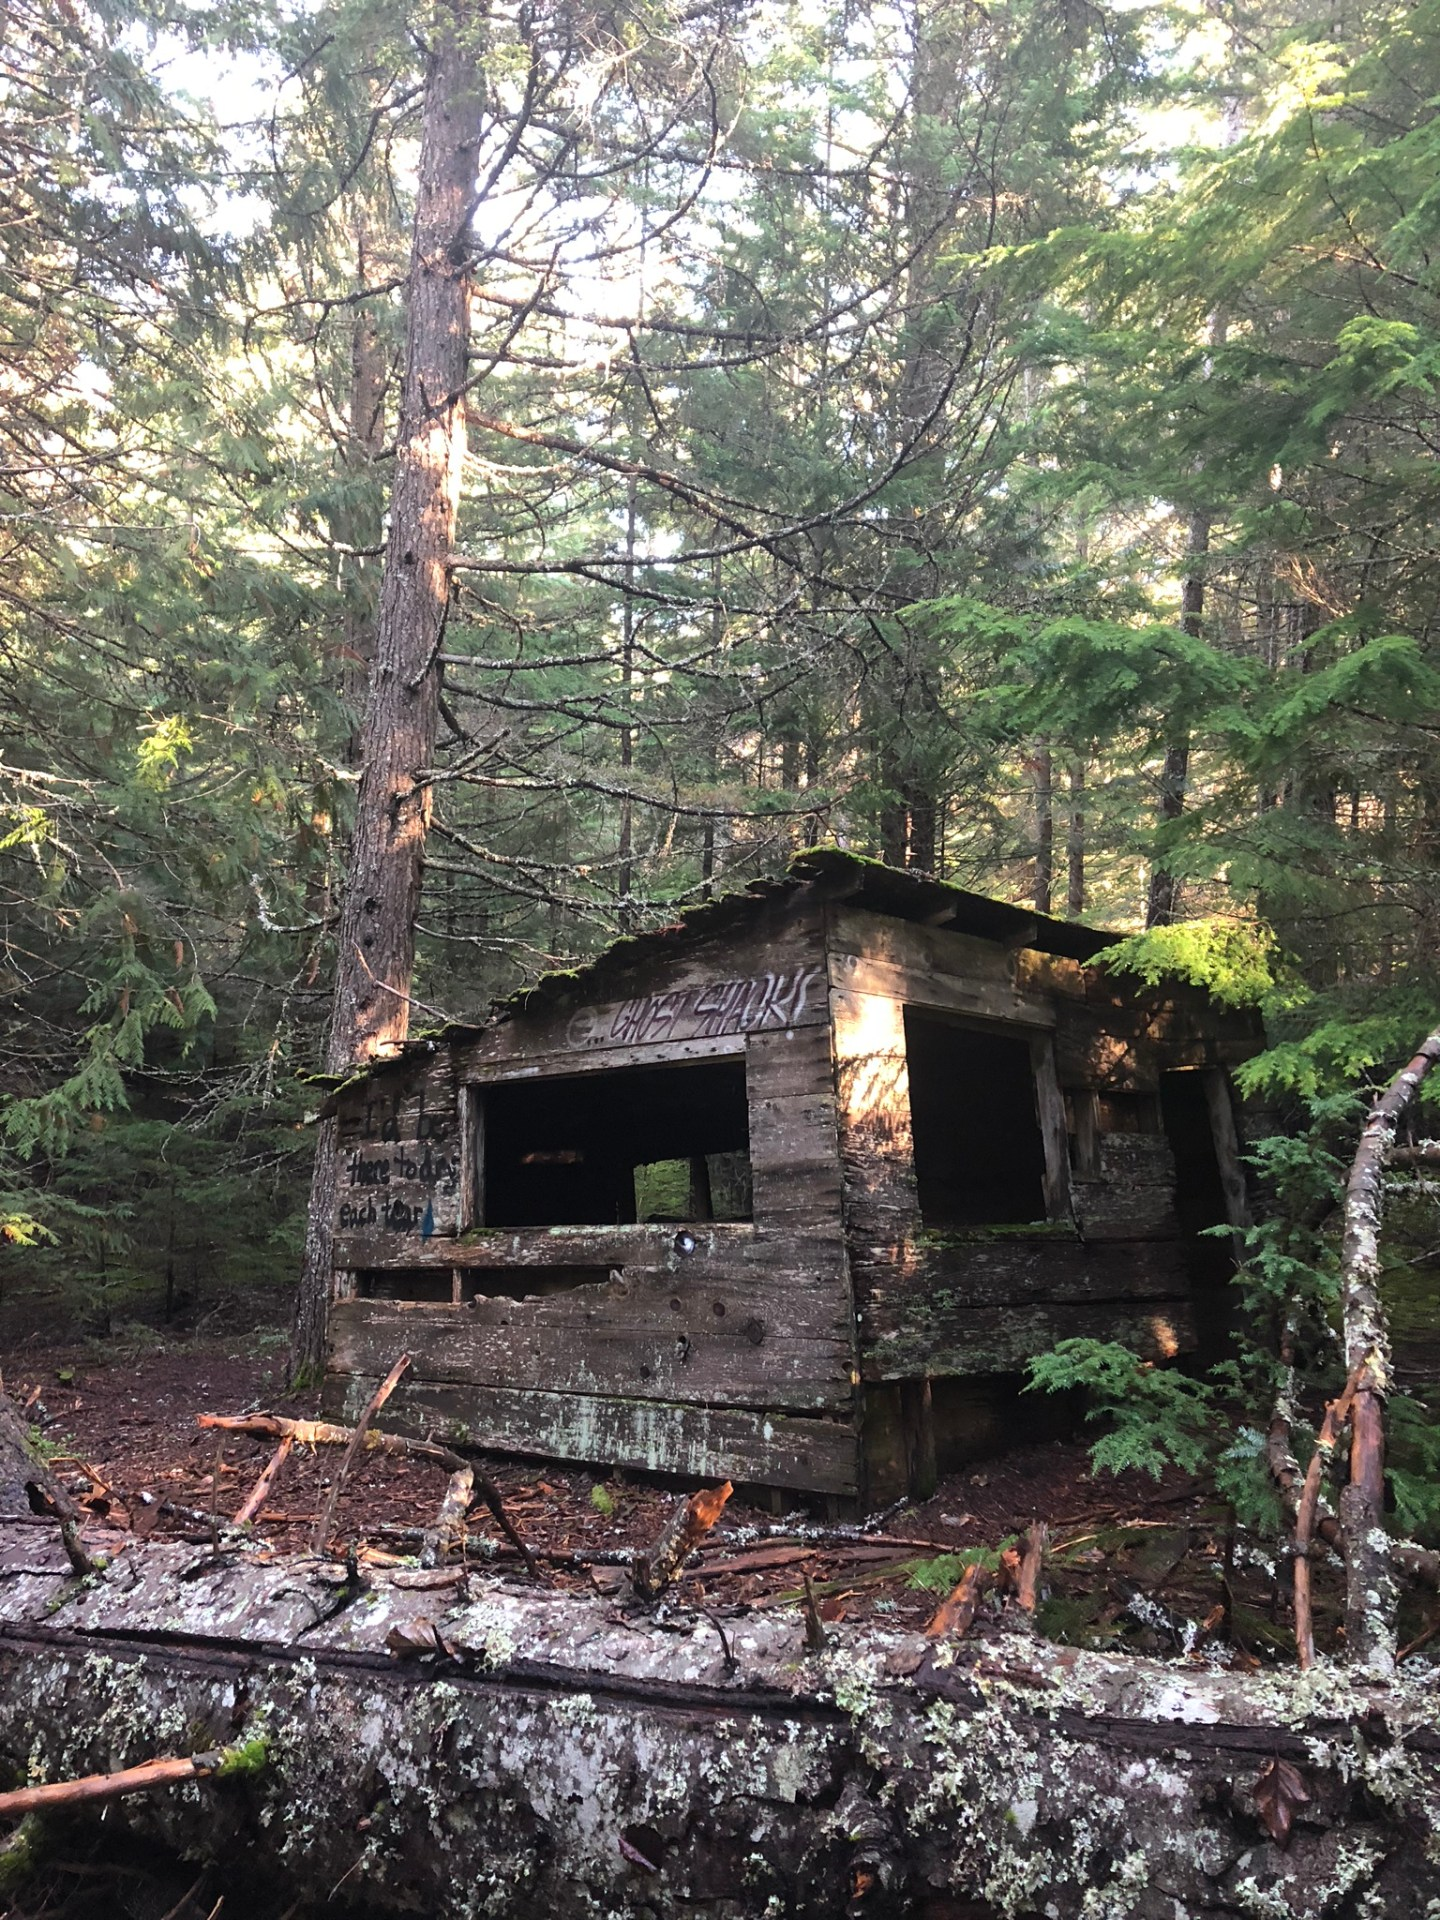 Abandoned house in the forest in Parkhurst near Whistler